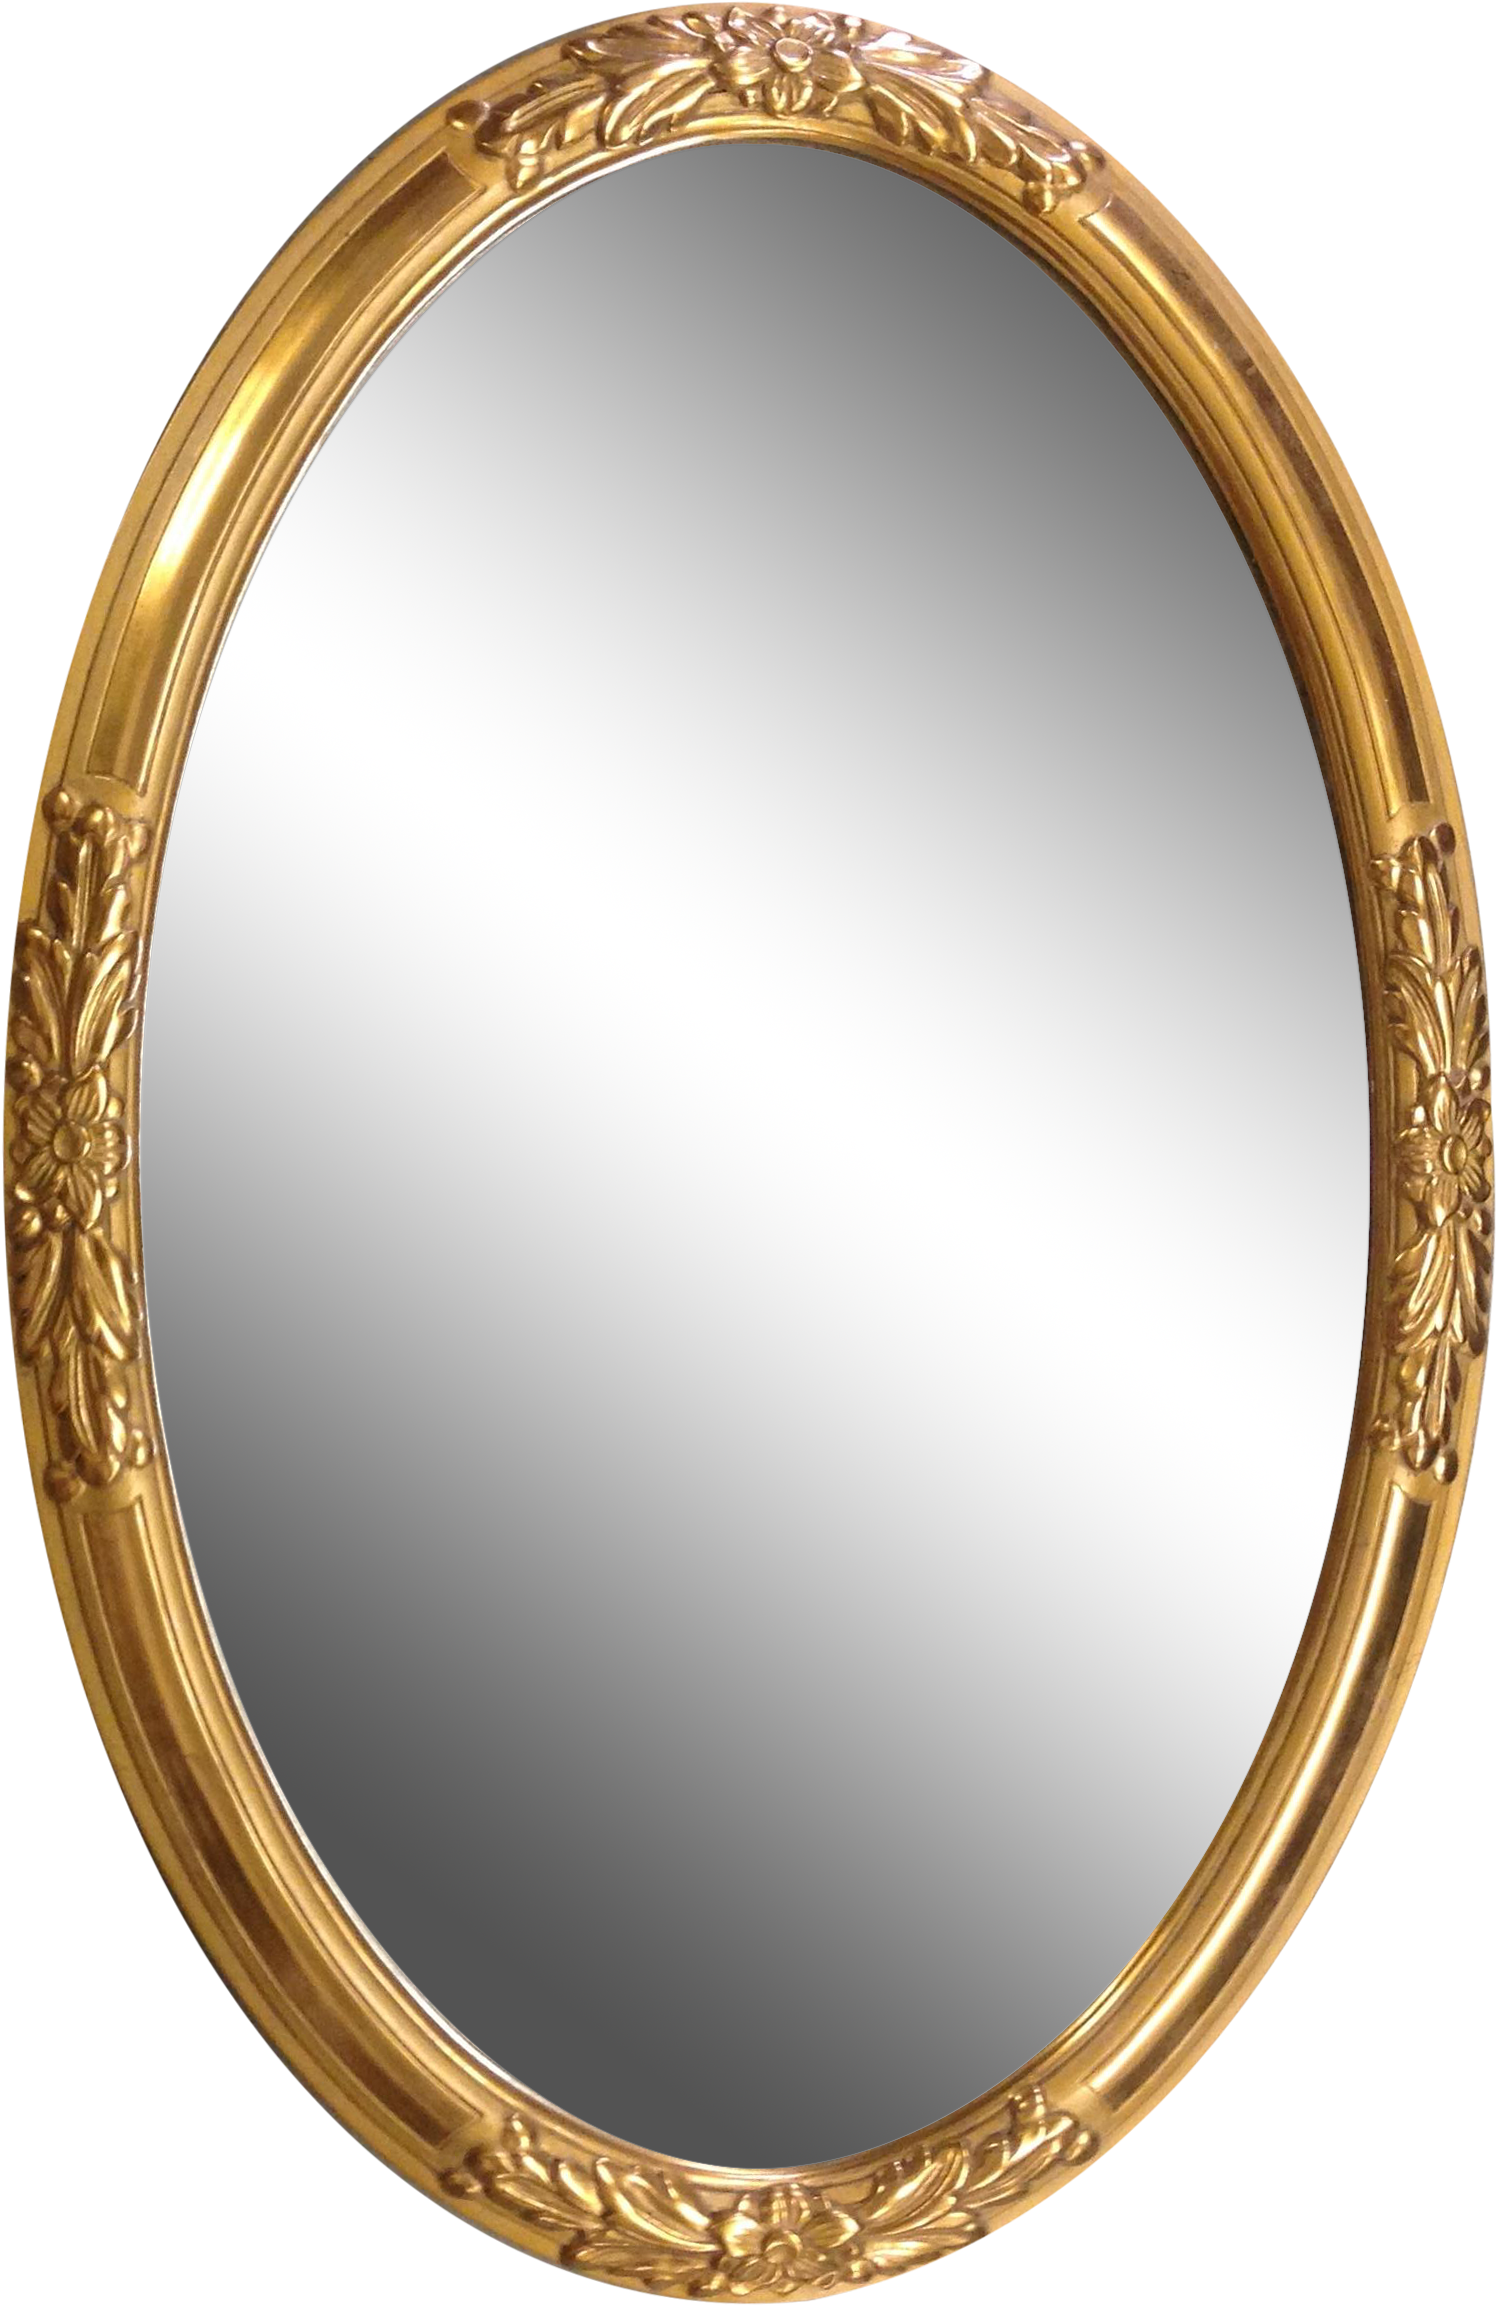 Oval Mirror Frame Png Clipart.